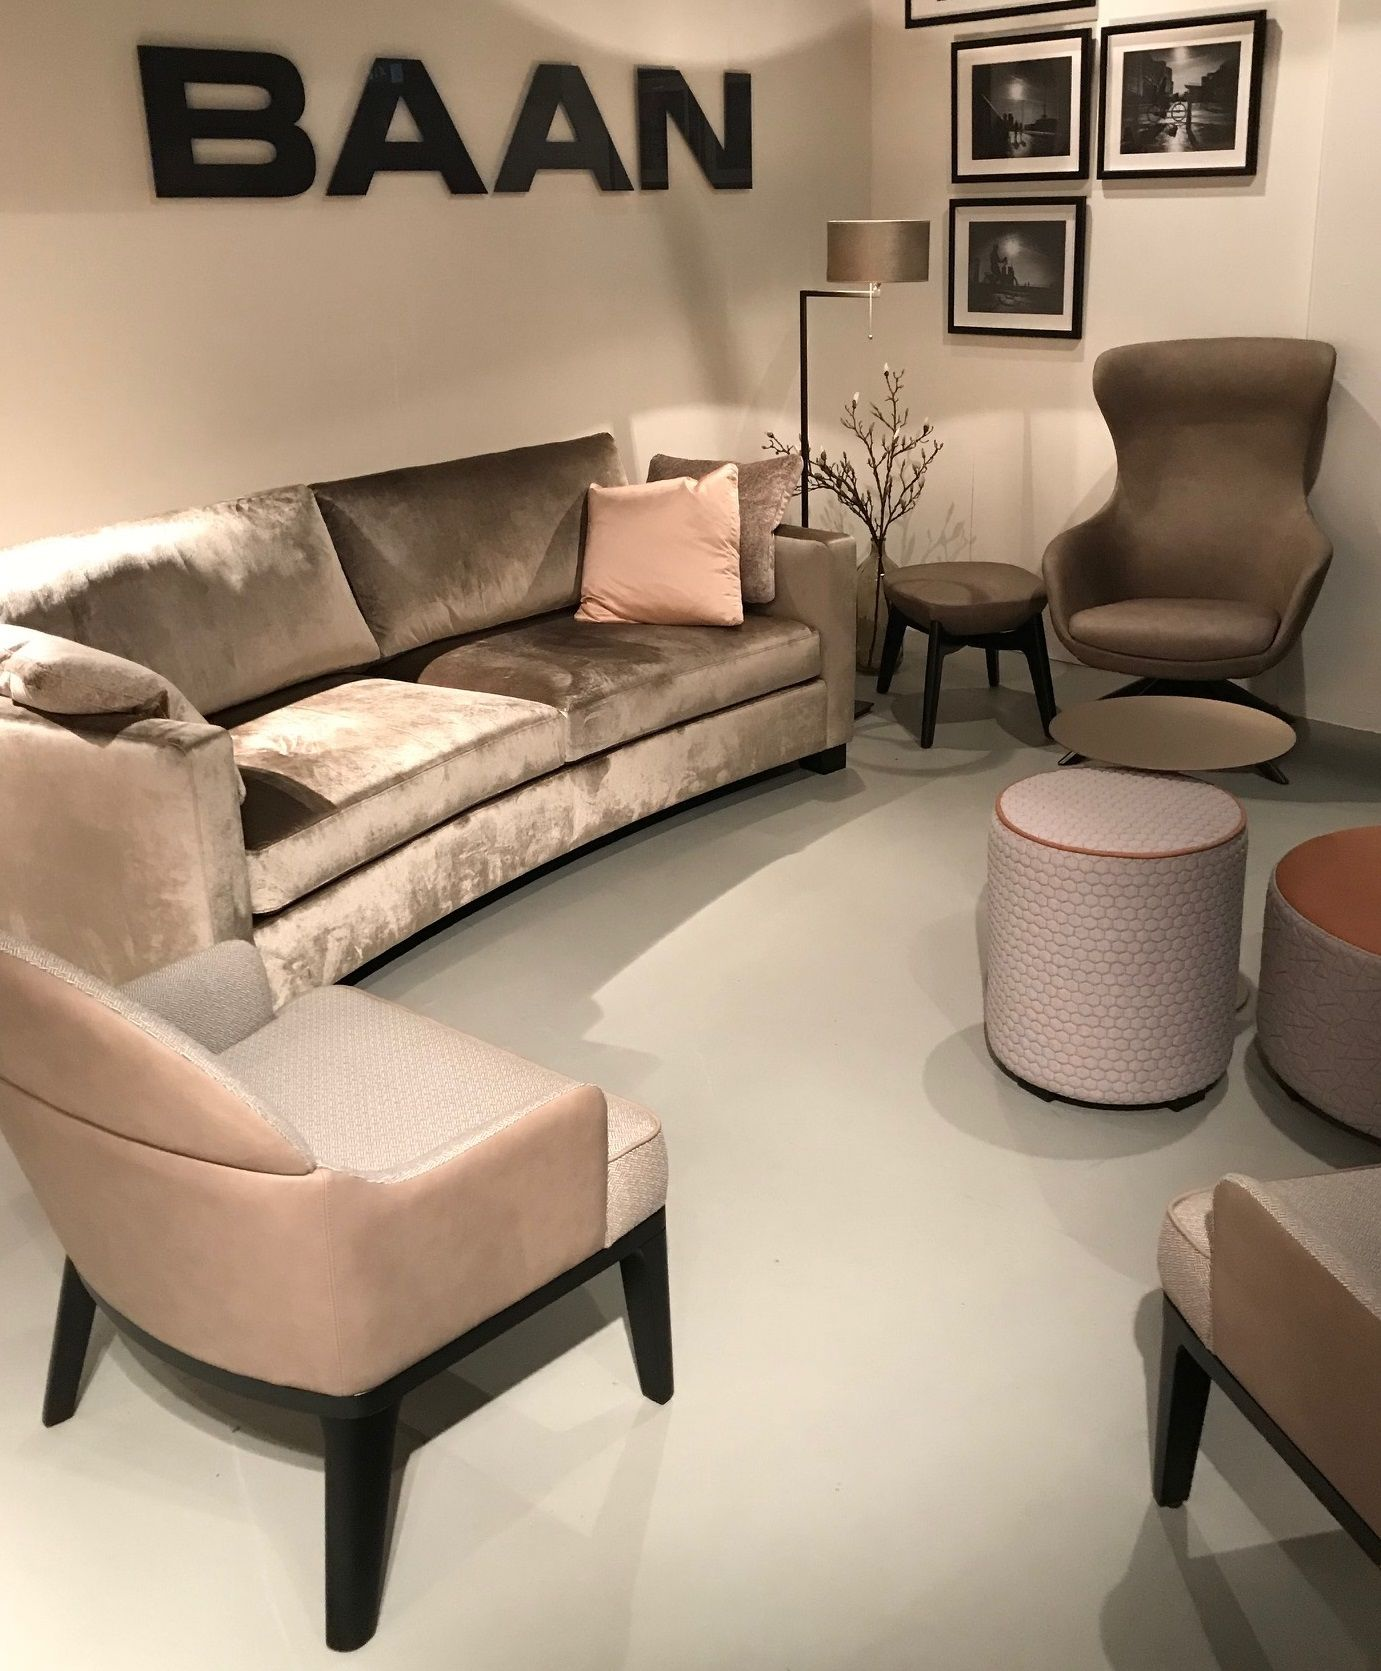 Bank Fauteuil Hocker.Bank Sam By Baan I Fauteuil Dylan By Baan I Fauteuil Cocoon